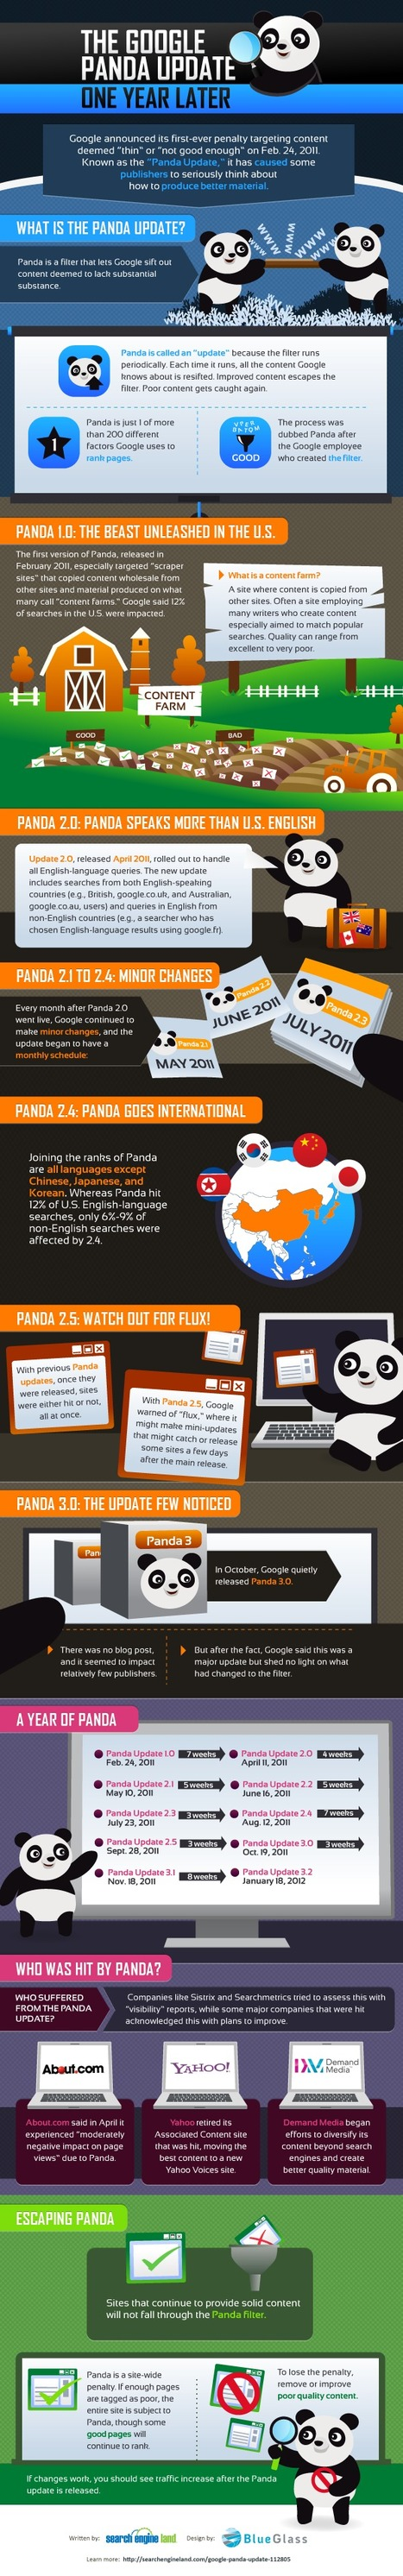 Infographic: The Google Panda Update, One Year Later | Google Algorithm | Scoop.it